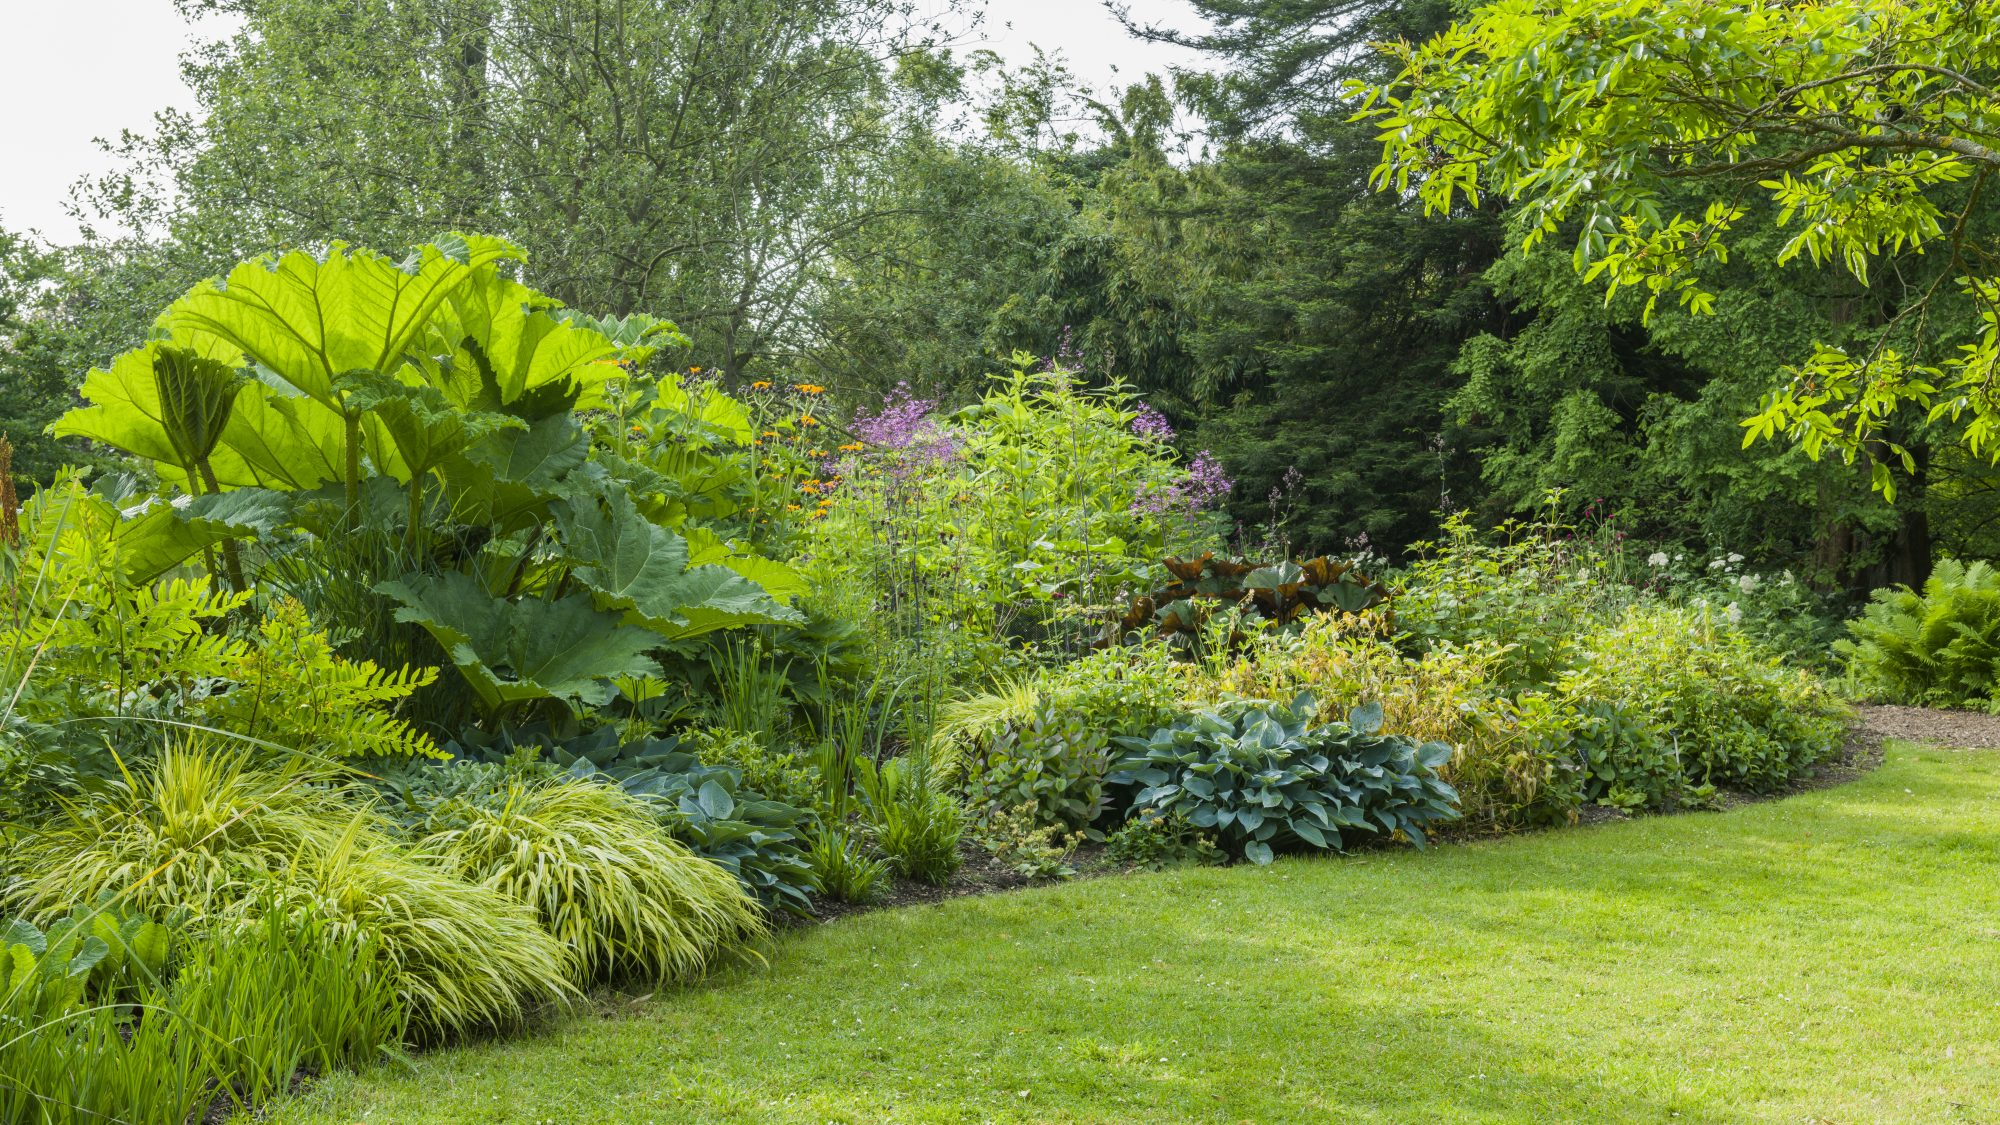 The Stream Garden bursting with summer foliage, including the giant Gunnera manicata.